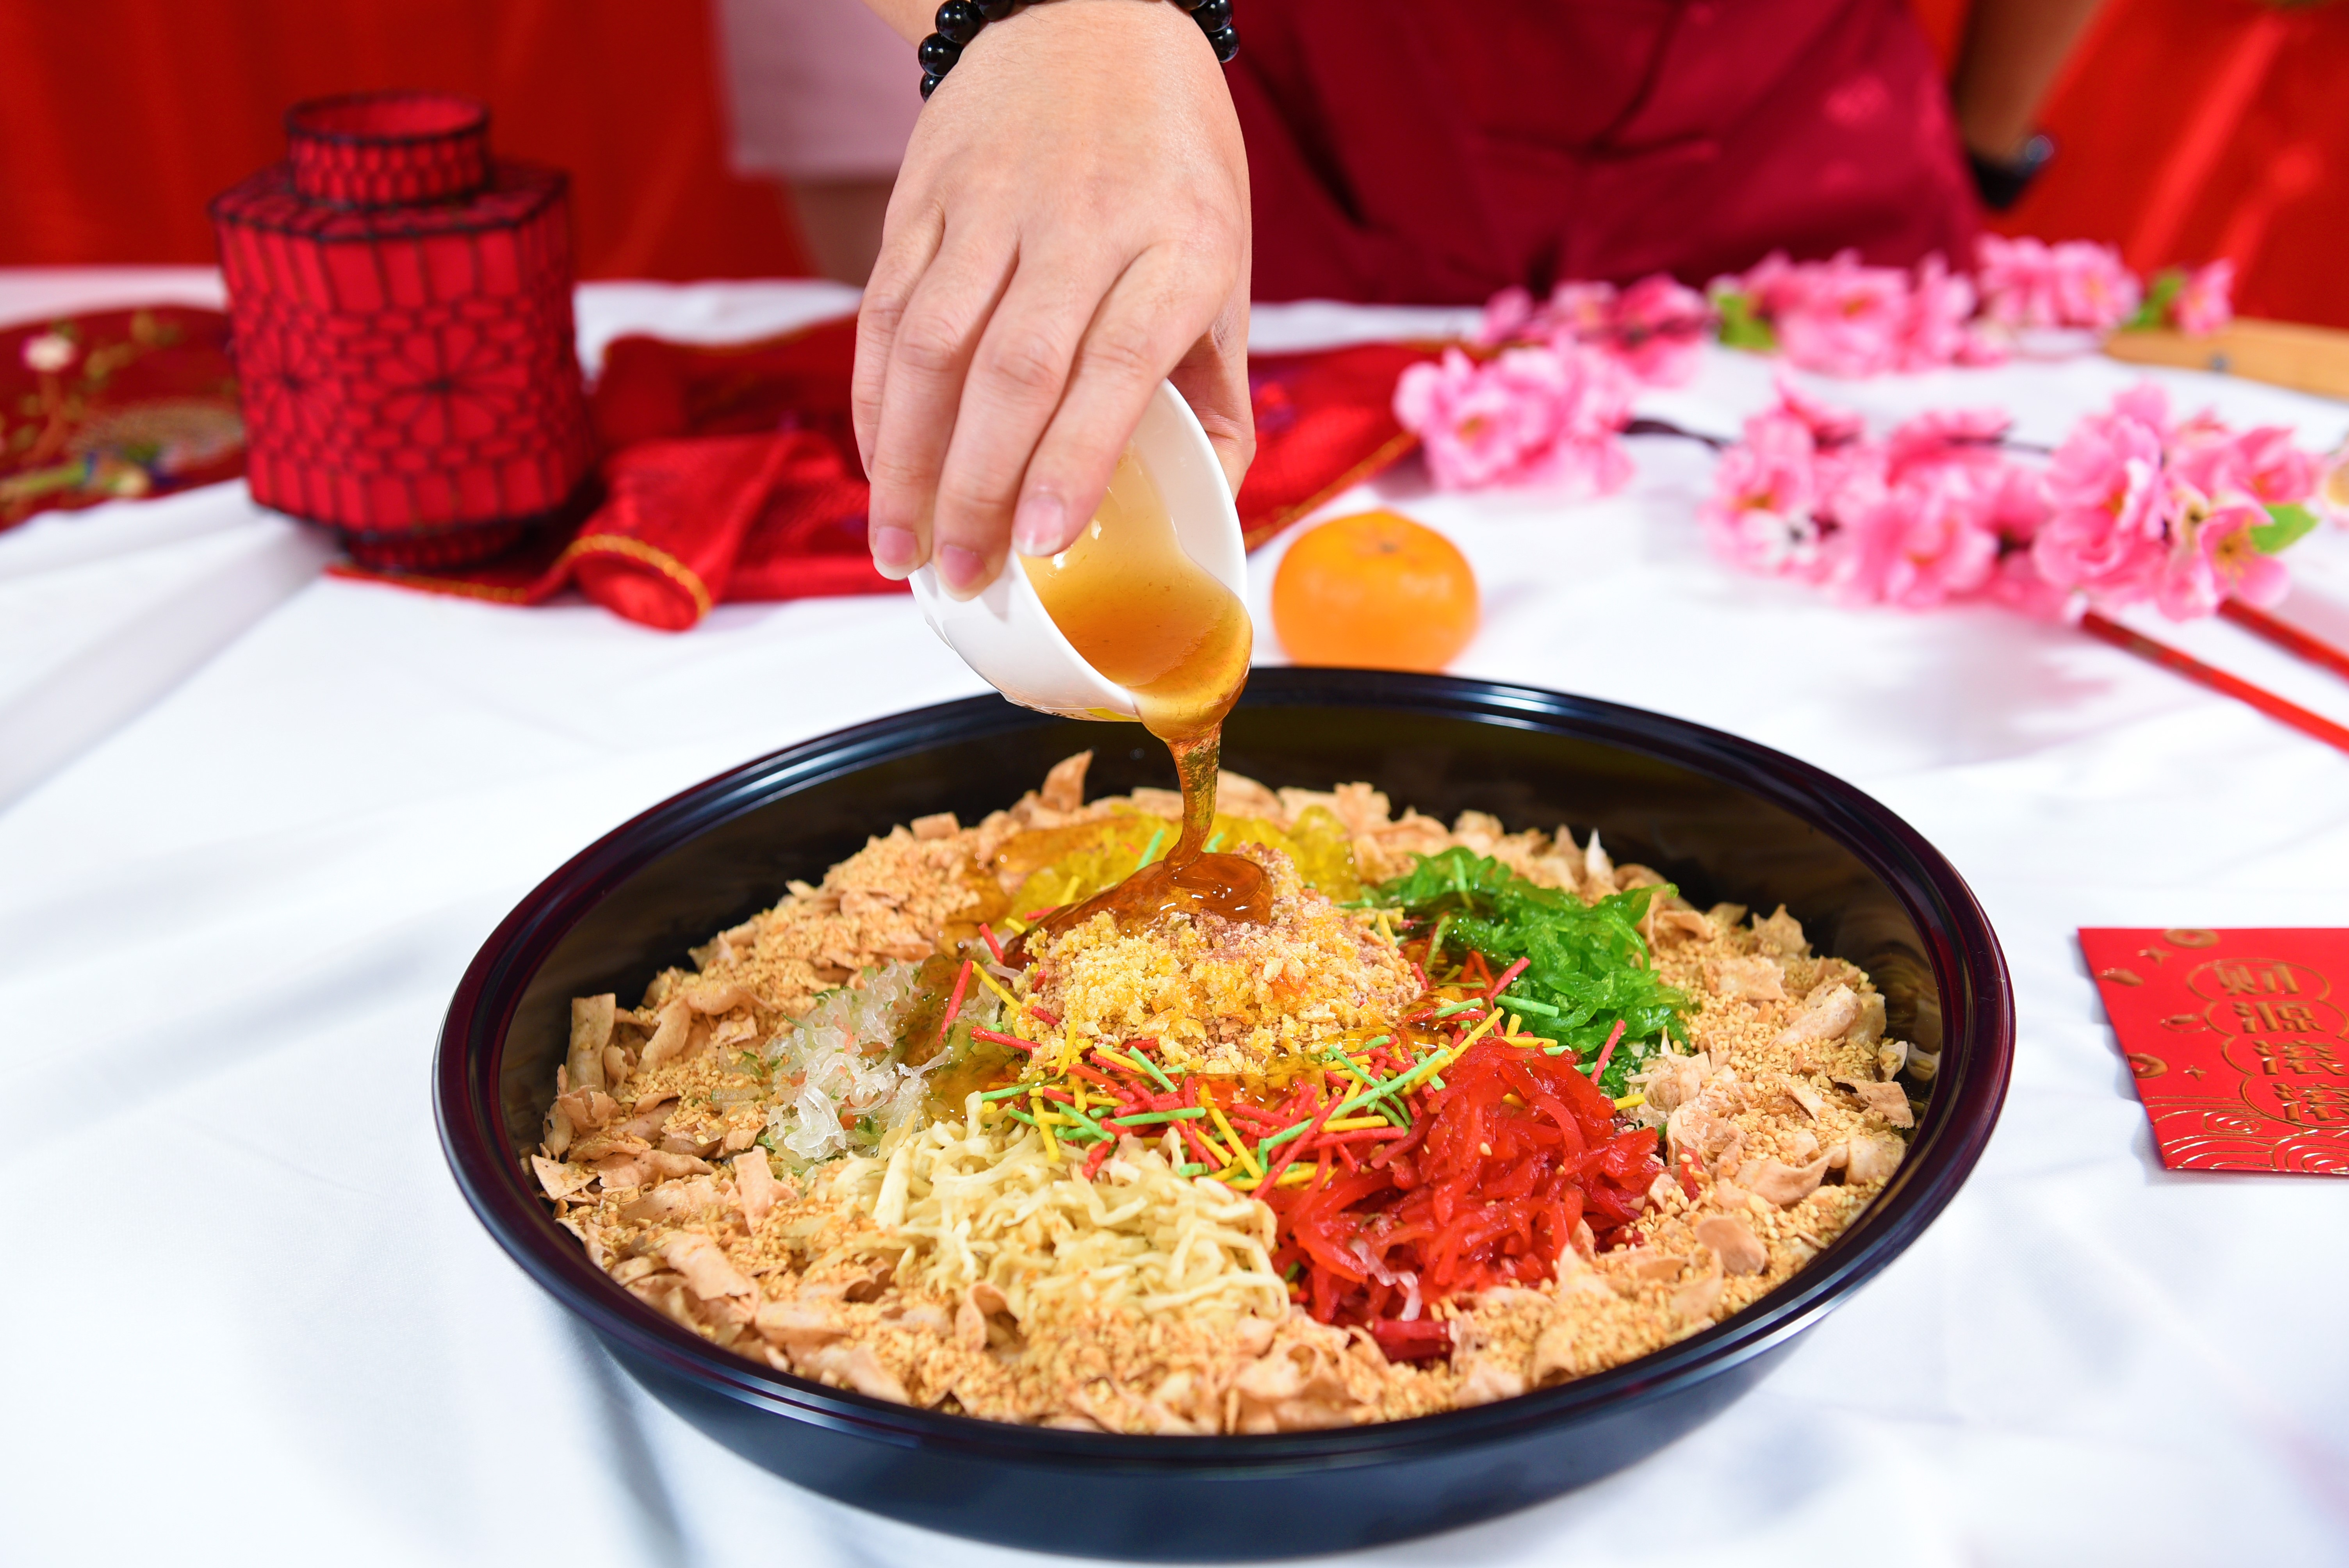 runningmen catering yee sang cny 2021 chinese new year pouring sweet sauce